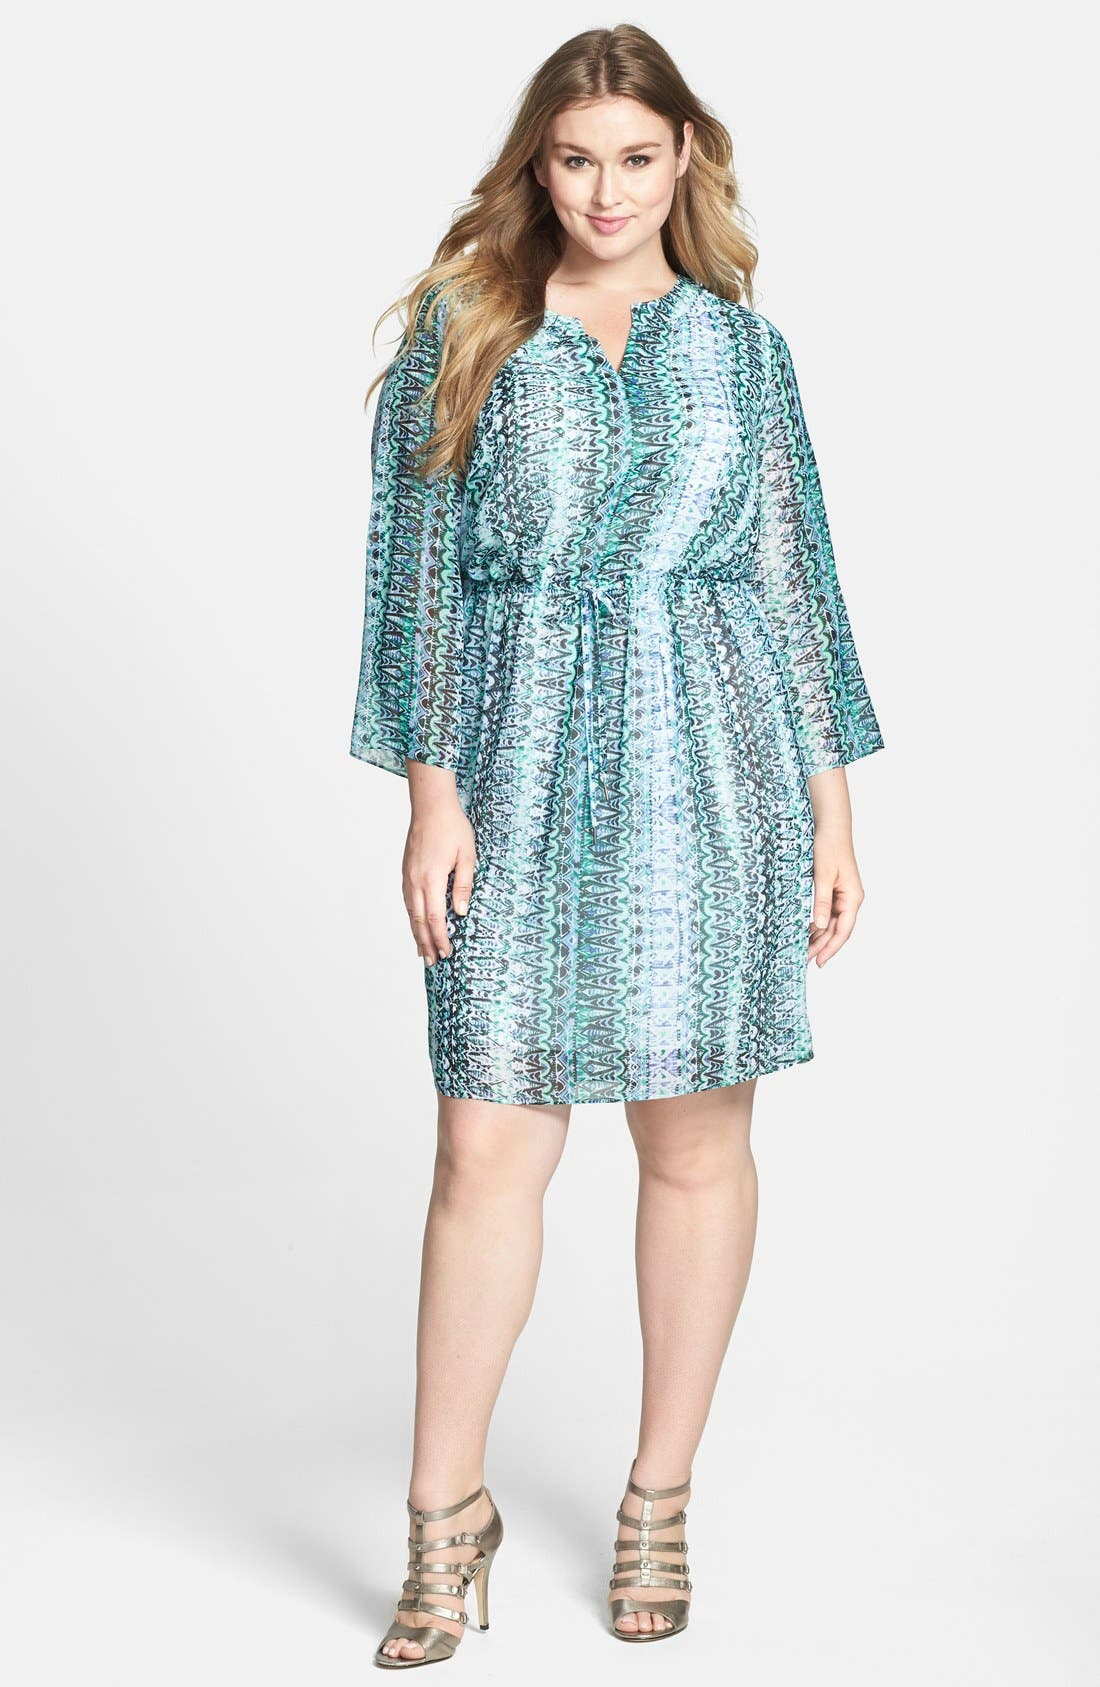 Alternate Image 1 Selected - Two by Vince Camuto 'Folk Geo' Split Neck Dress (Plus Size)